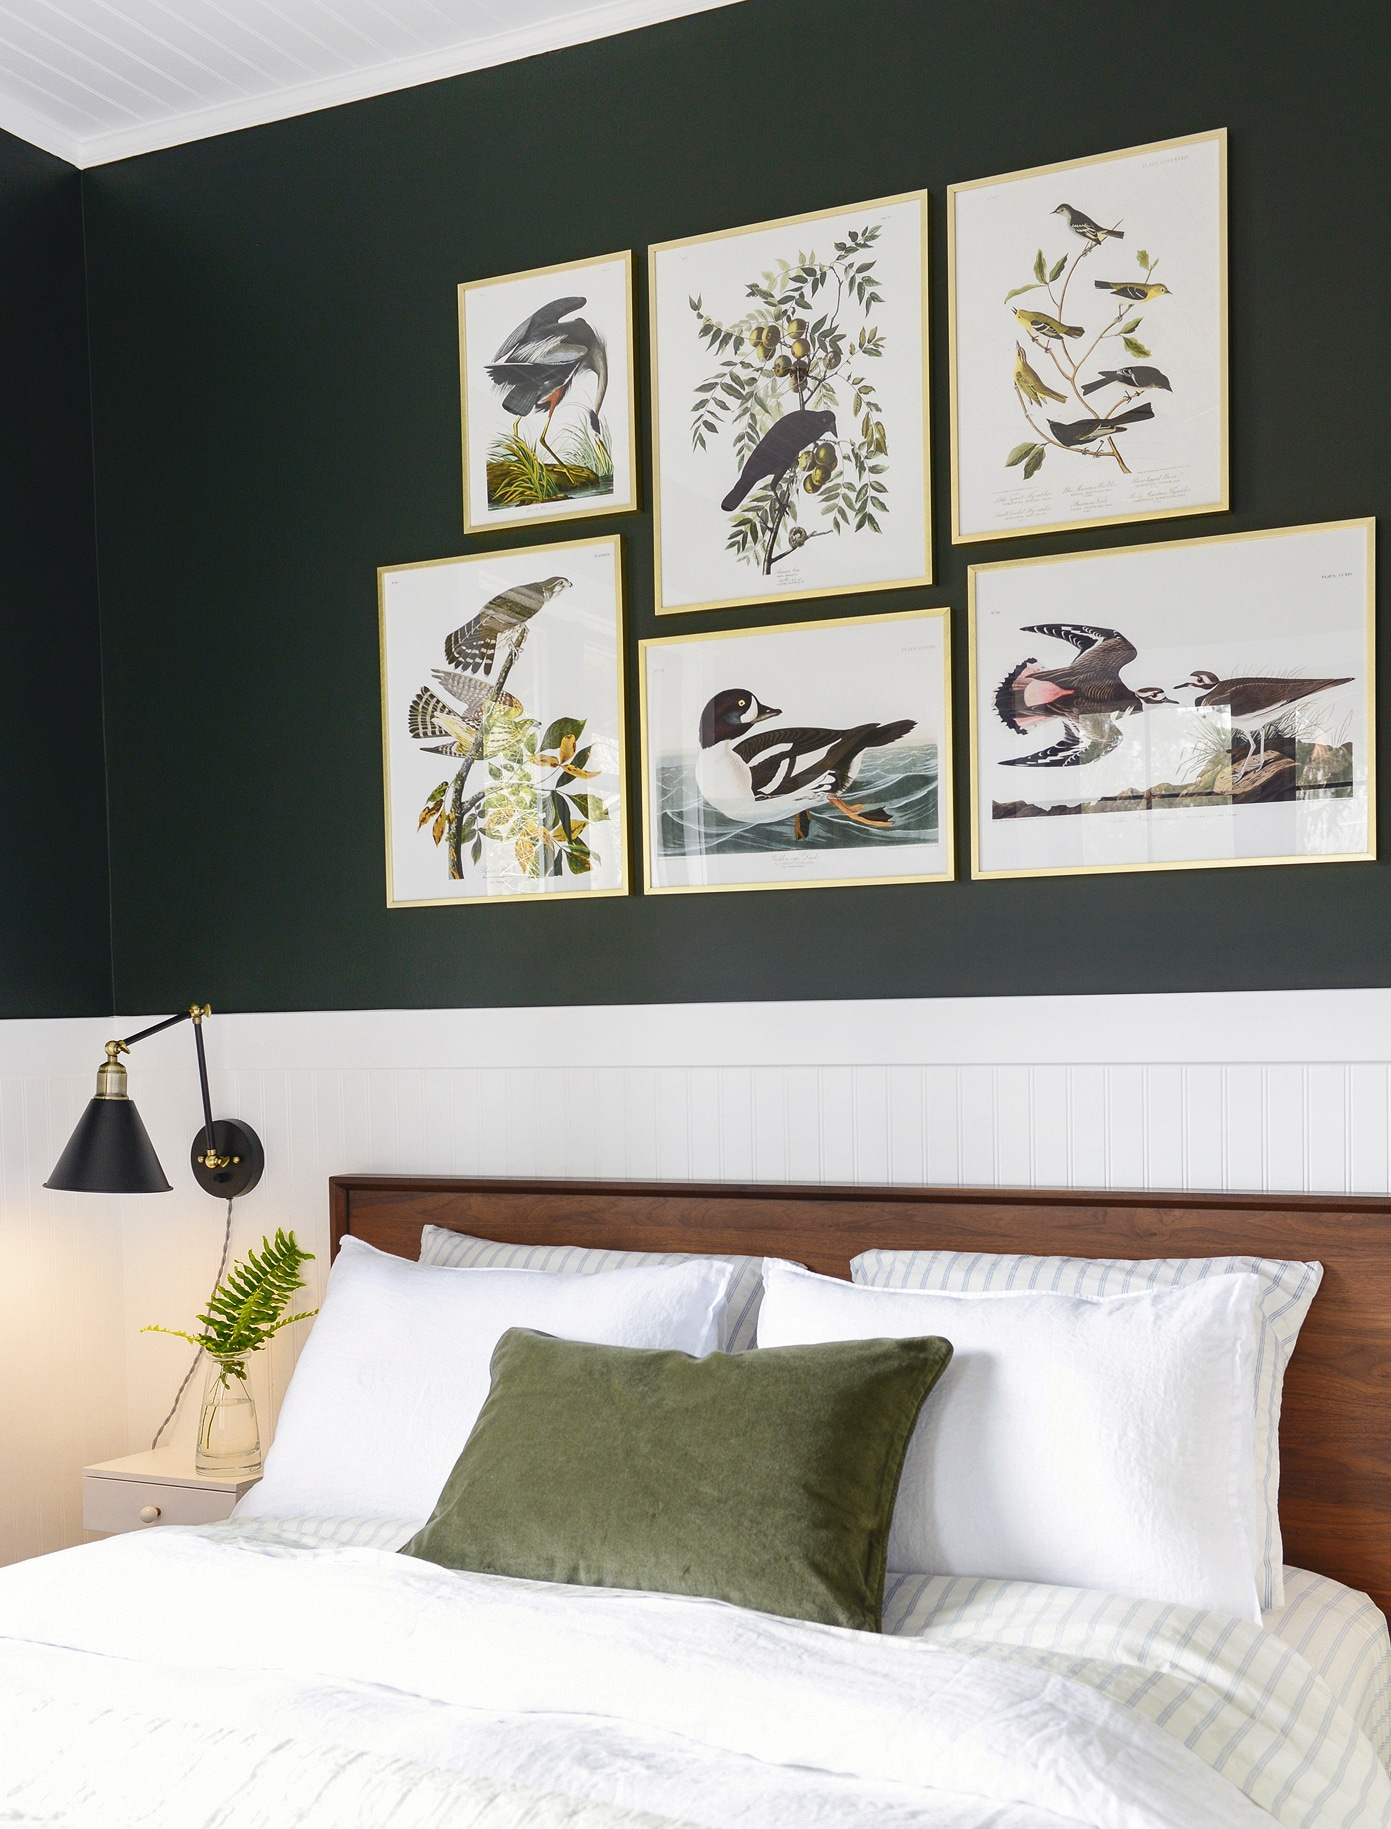 About Those Birds + How-To Plan a Gallery Wall